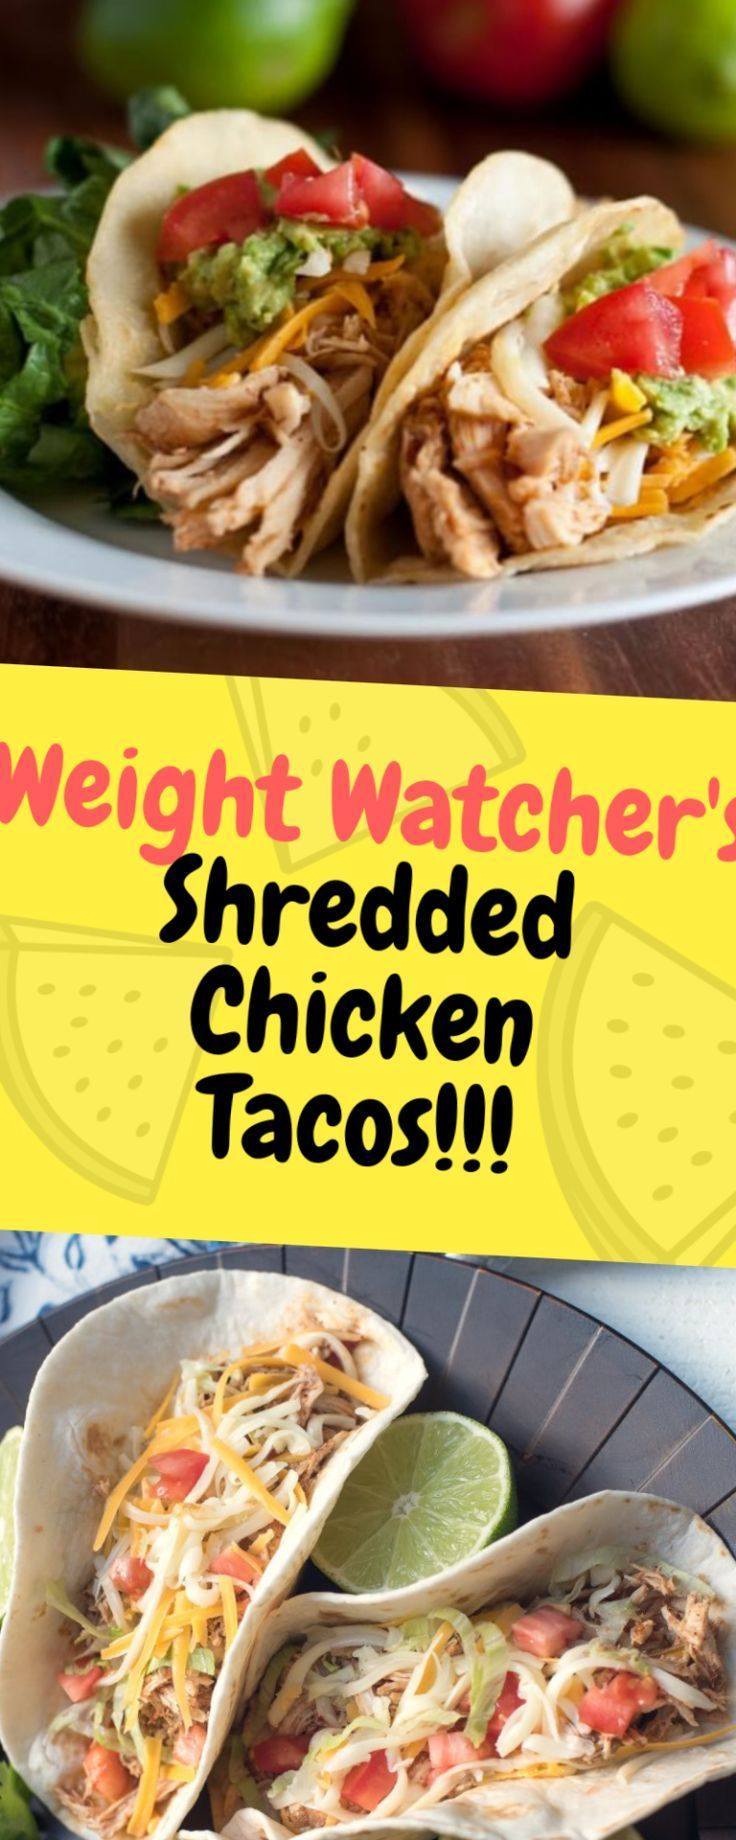 Weight Watchers Shredded Chicken Tacos  Eines der Lebensmittel #shreddedchickentacos Weight Watchers Shredded Chicken Tacos  Eines der Lebensmittel #shreddedchickentacos